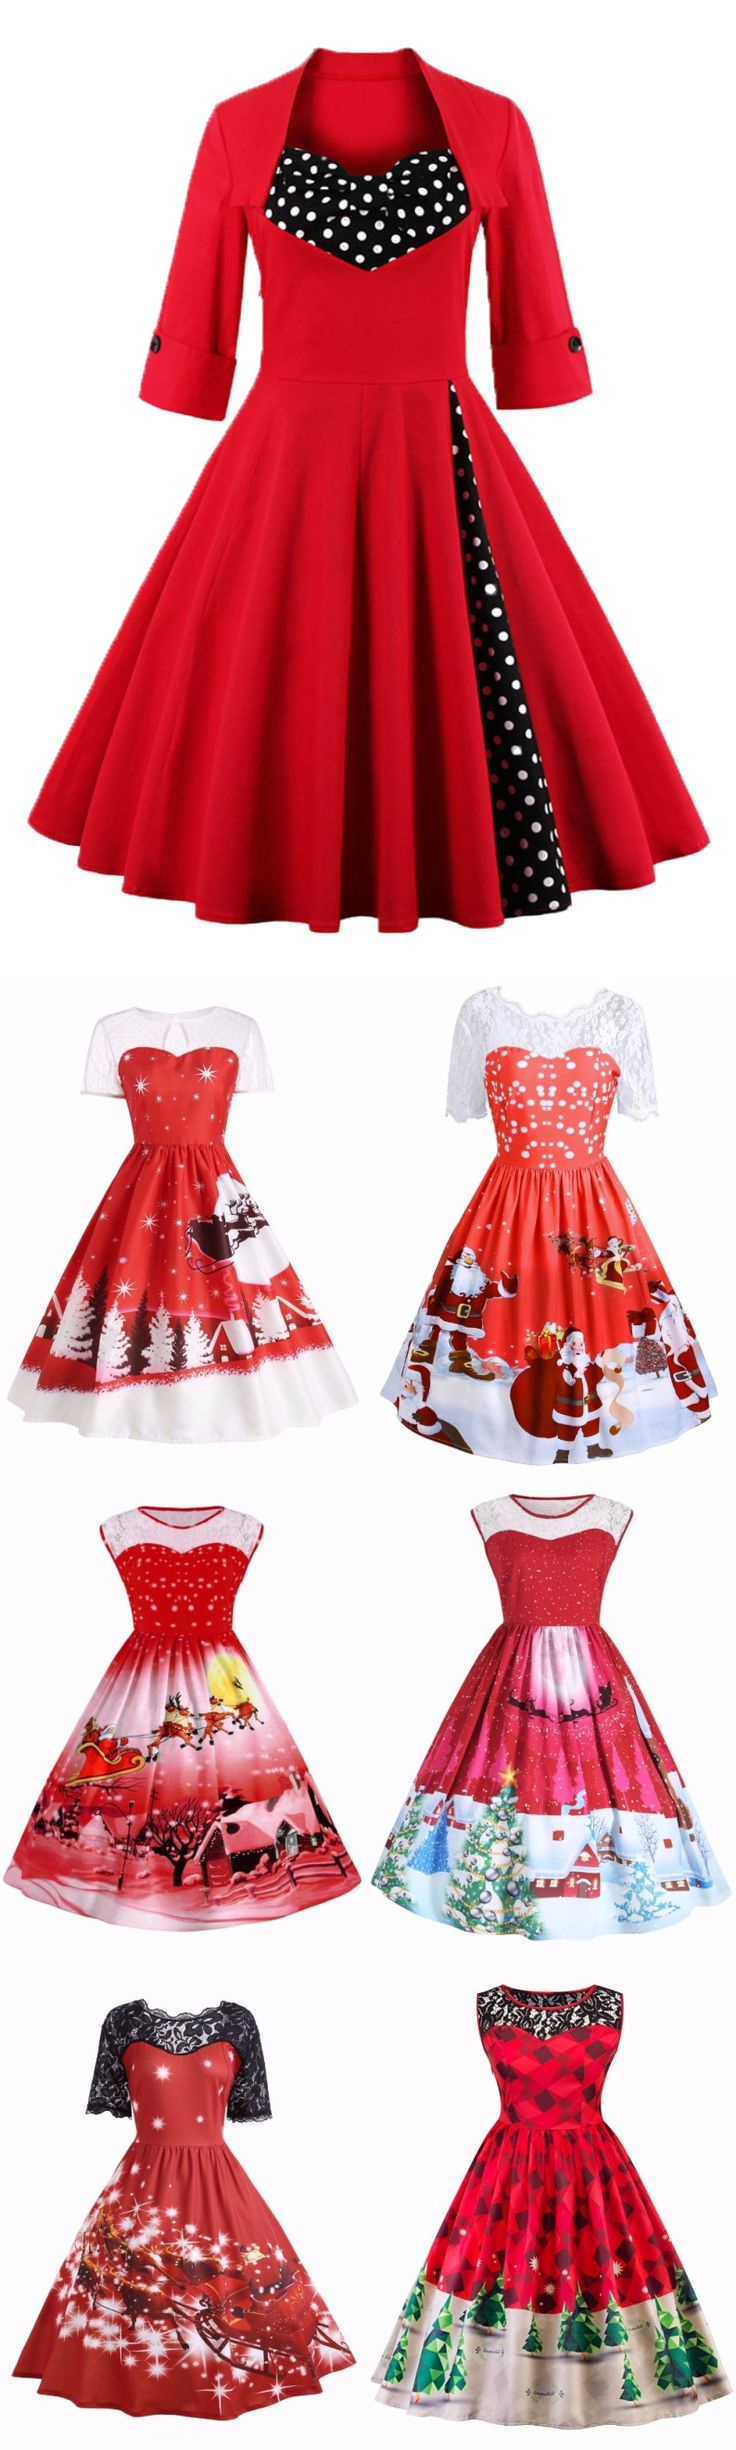 #Red #Christmas Up To 85% OFF | Start From $3.99 | Red Vintage Christmas Dress | Sammydress.com